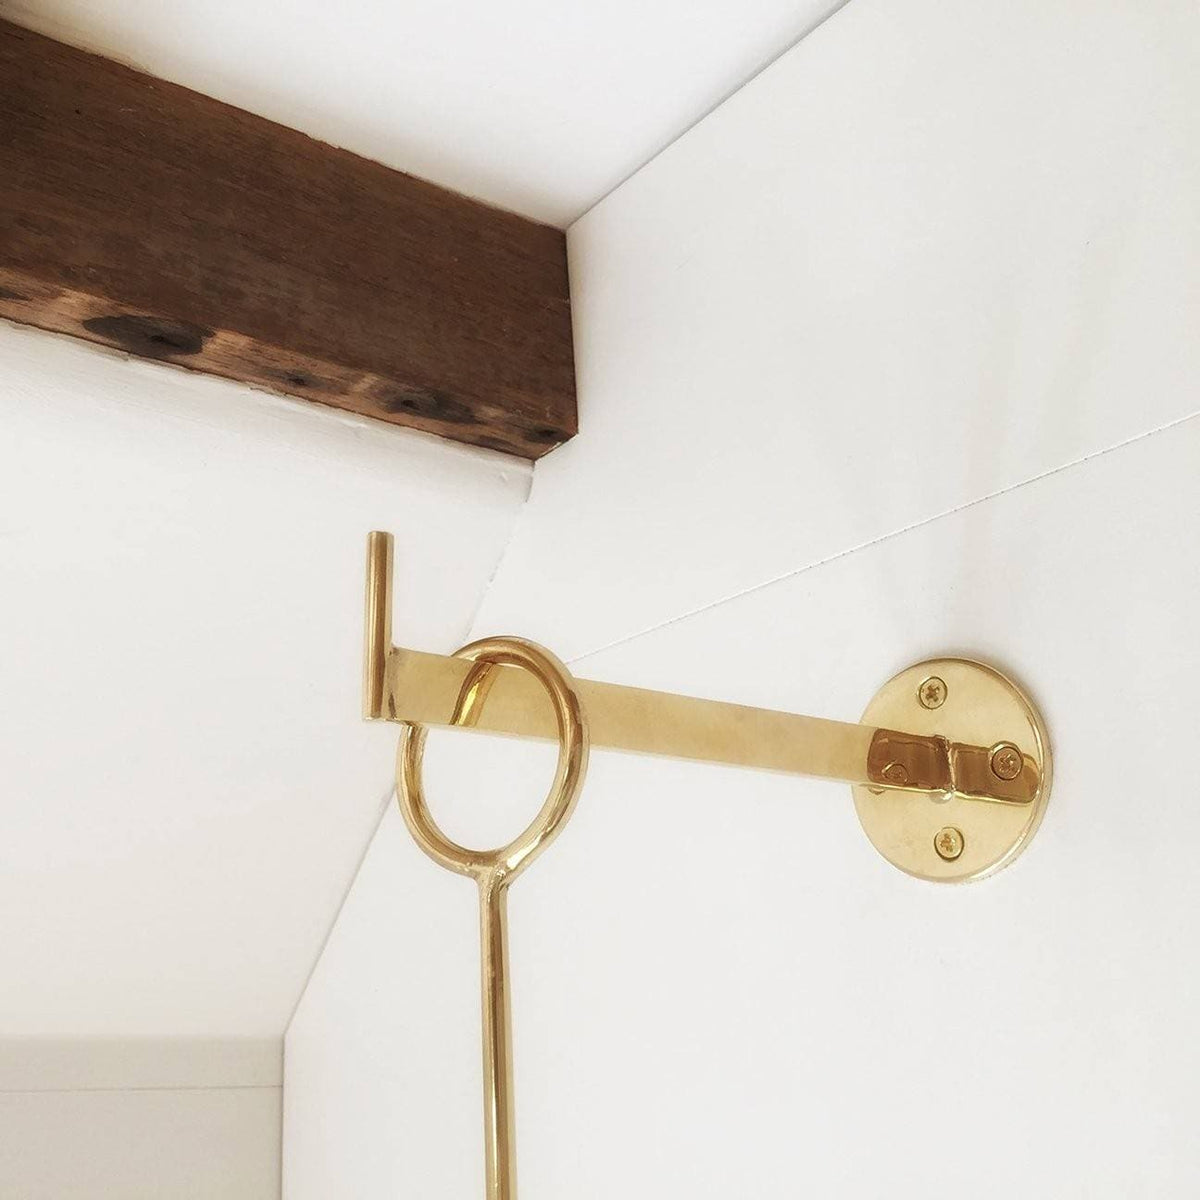 Wall Mounting Hook - Brass